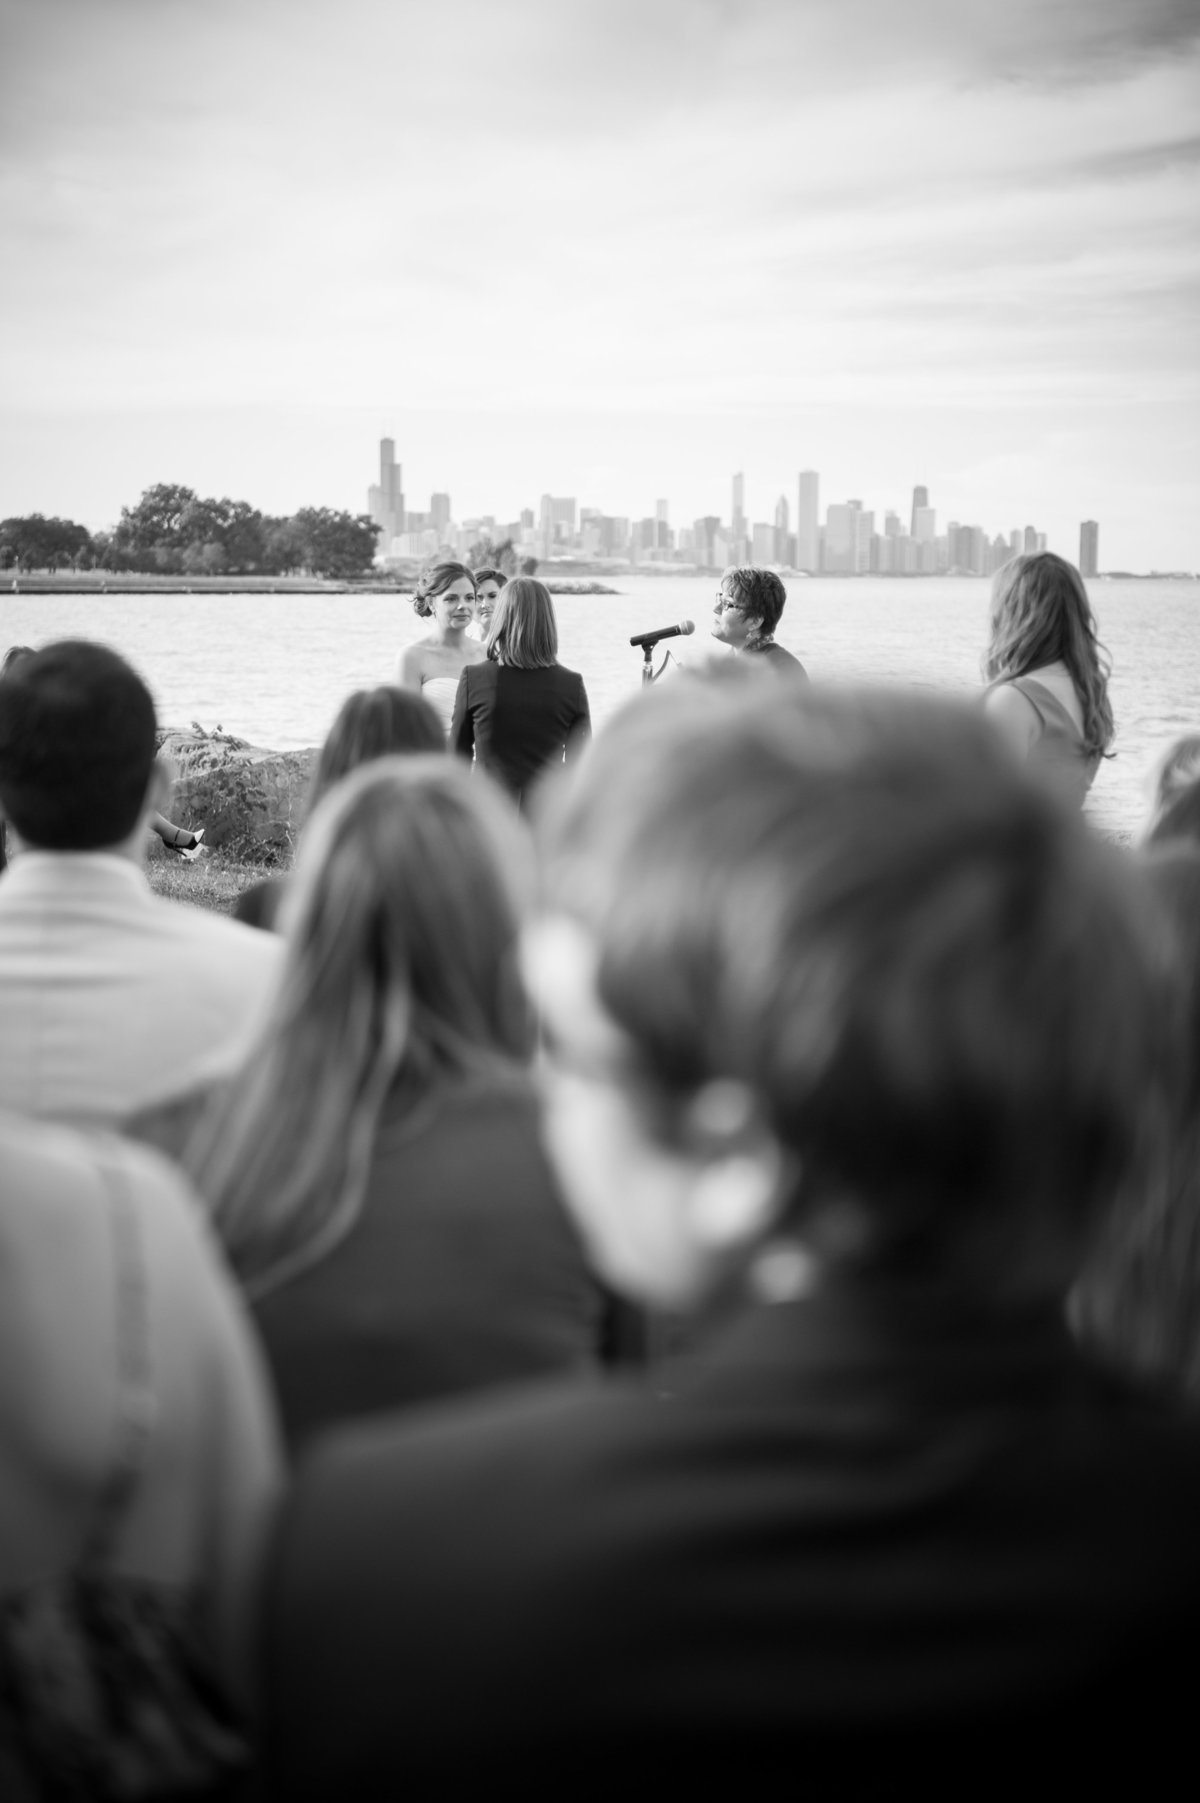 Destination Wedding Photography Chicago Wedding Photography LGBT Wedding Photography Promontory Point073